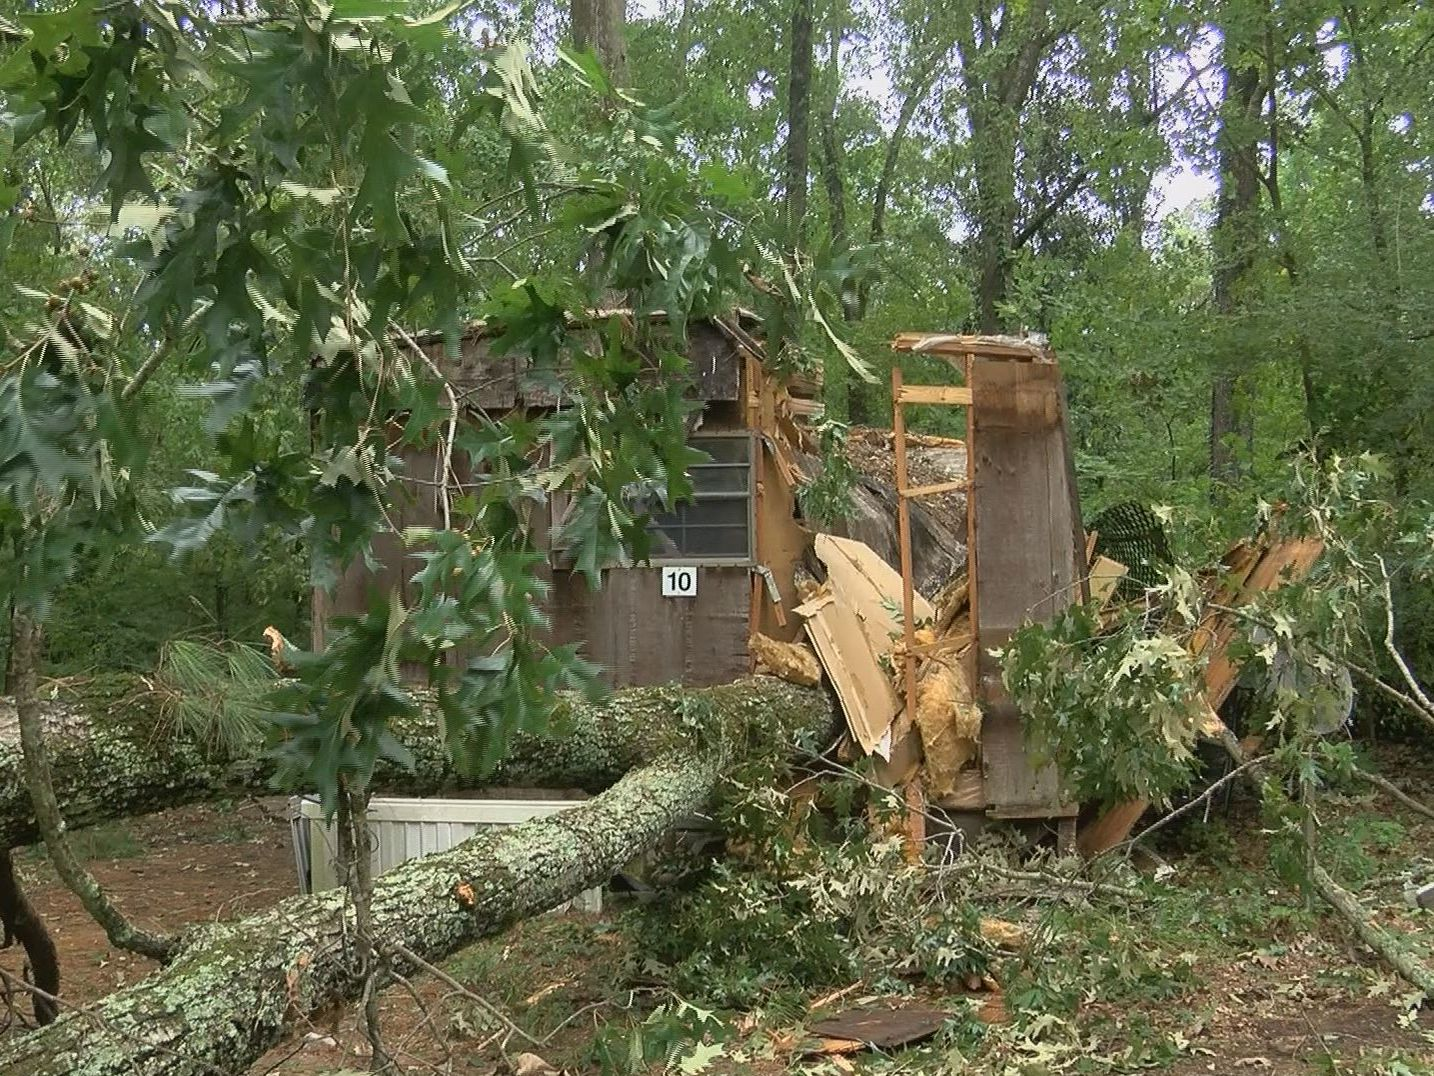 Tree falls on home and power lines down in Warren County neighborhood